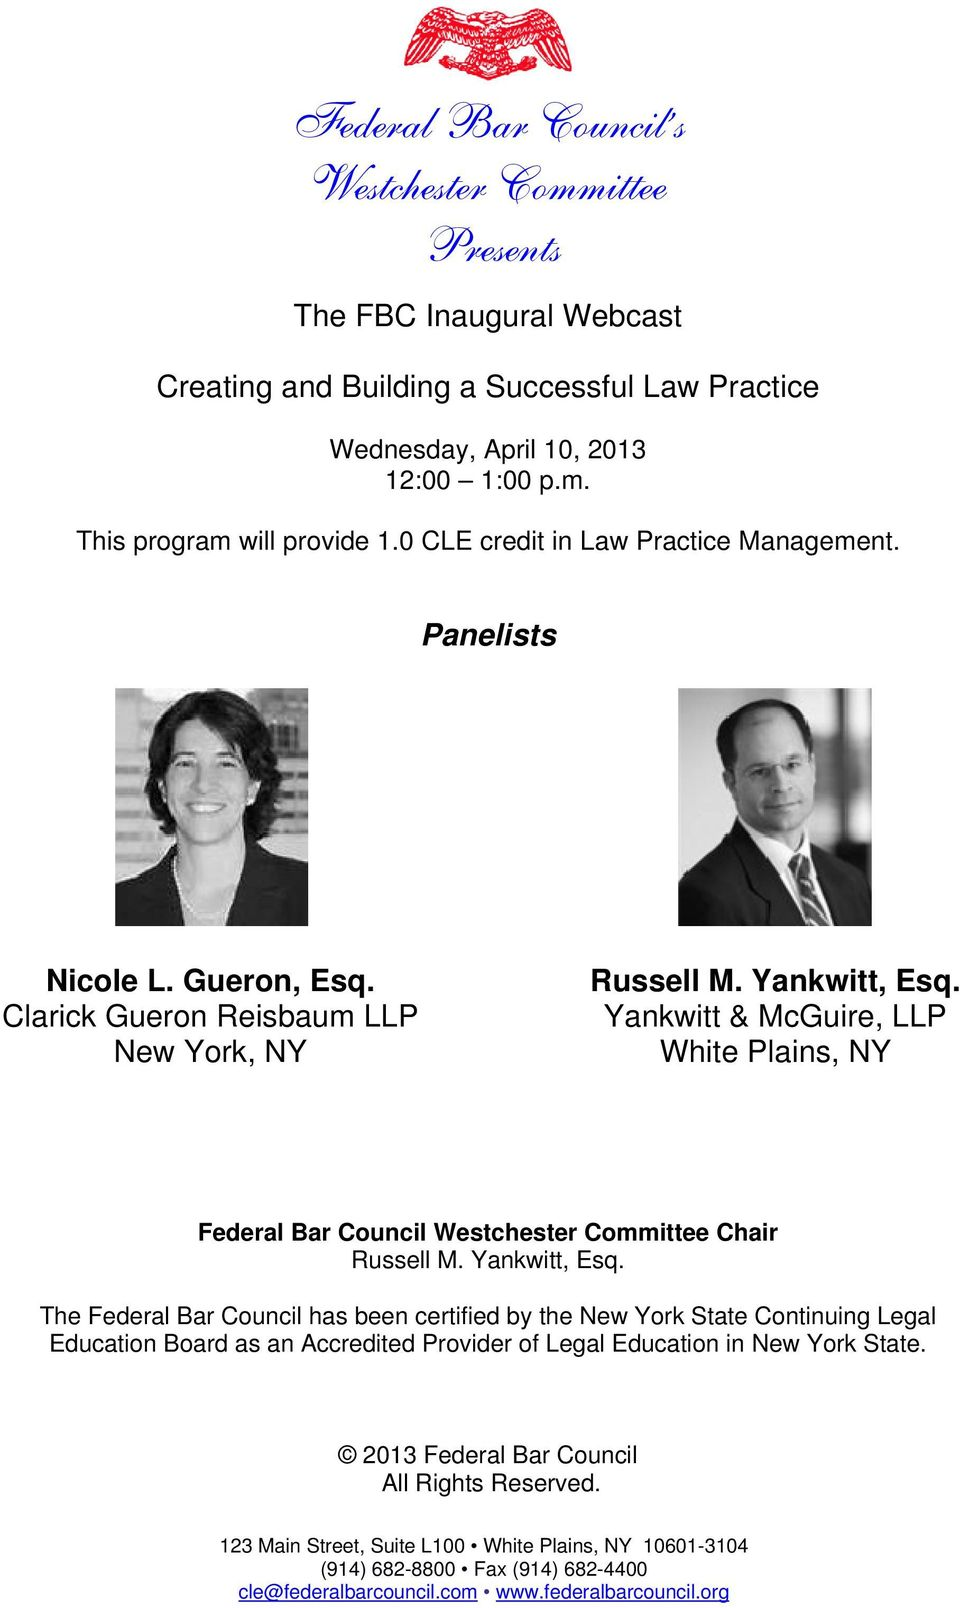 Yankwitt & McGuire, LLP White Plains, NY Federal Bar Council Westchester Committee Chair Russell M. Yankwitt, Esq.